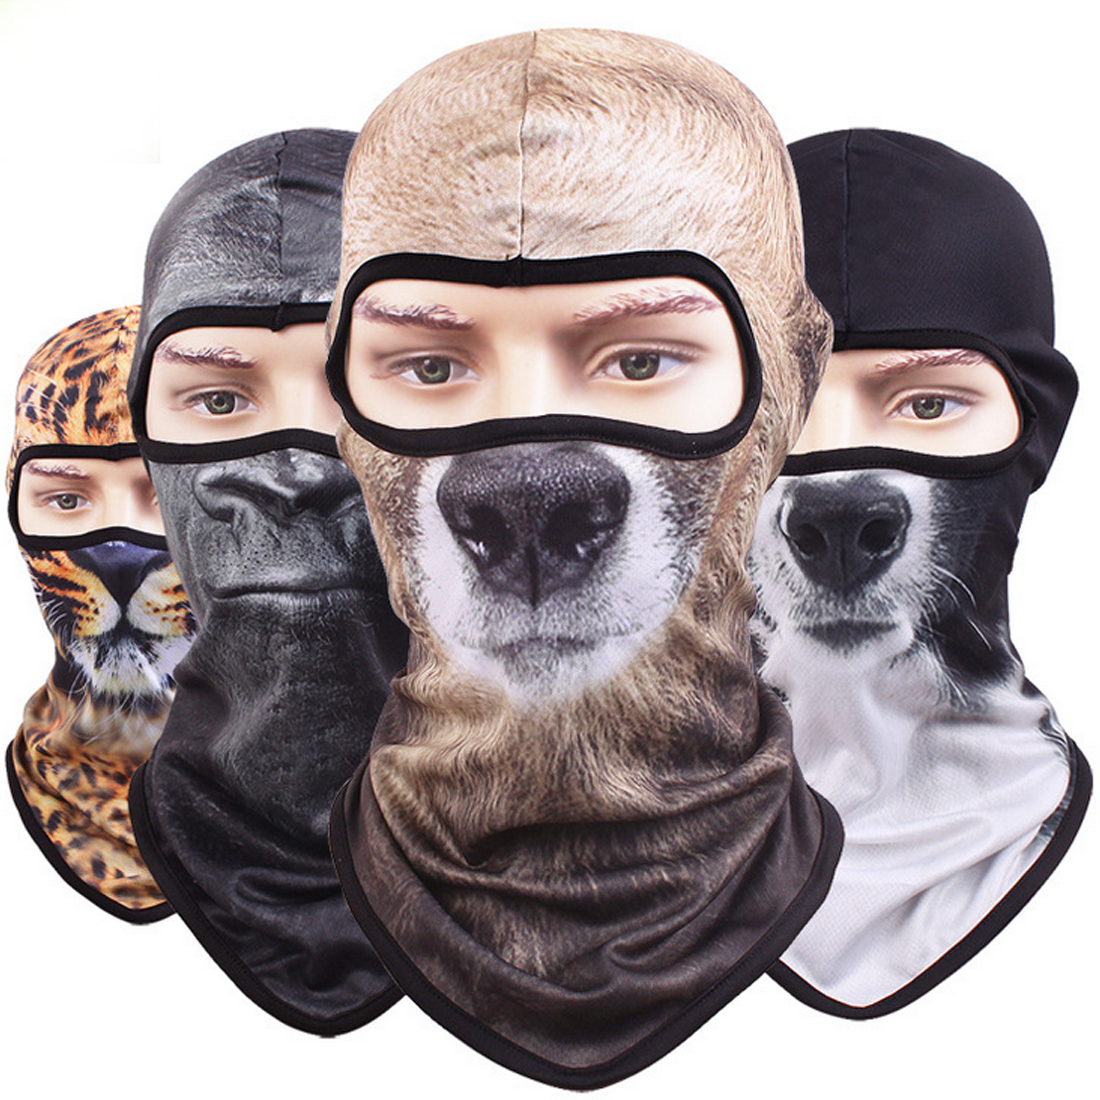 Quick Dry Breathable 3D Animal Balaclava Hat Bicycle Tactical Helmet  Skull Hood Cap Snowboard Full Face Mask For Men Women